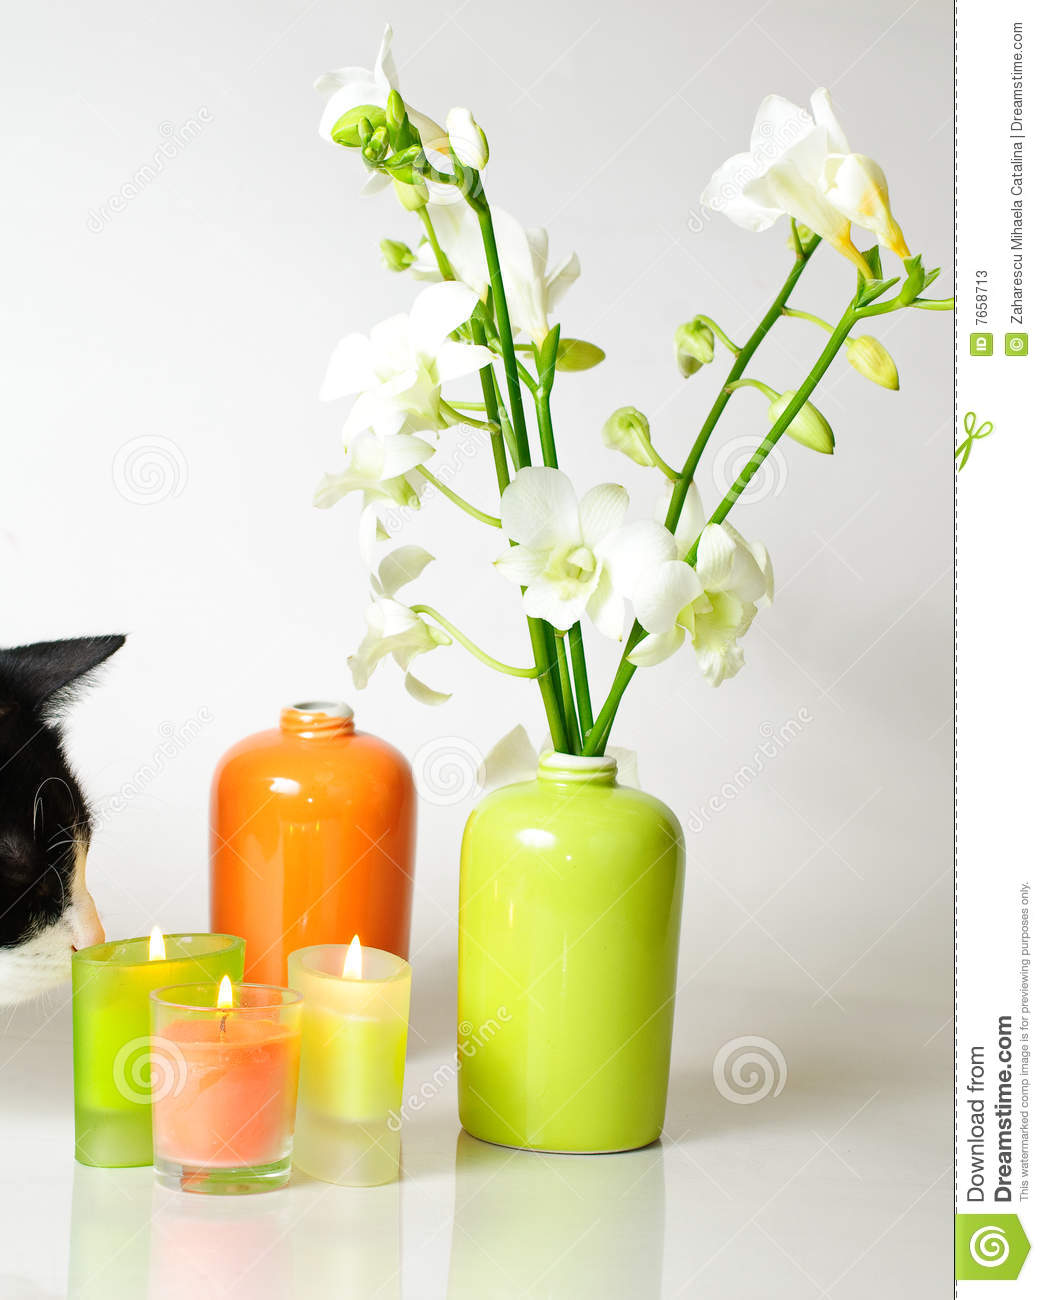 Spa decorations stock photos image 7658713 for Spa smelling candles